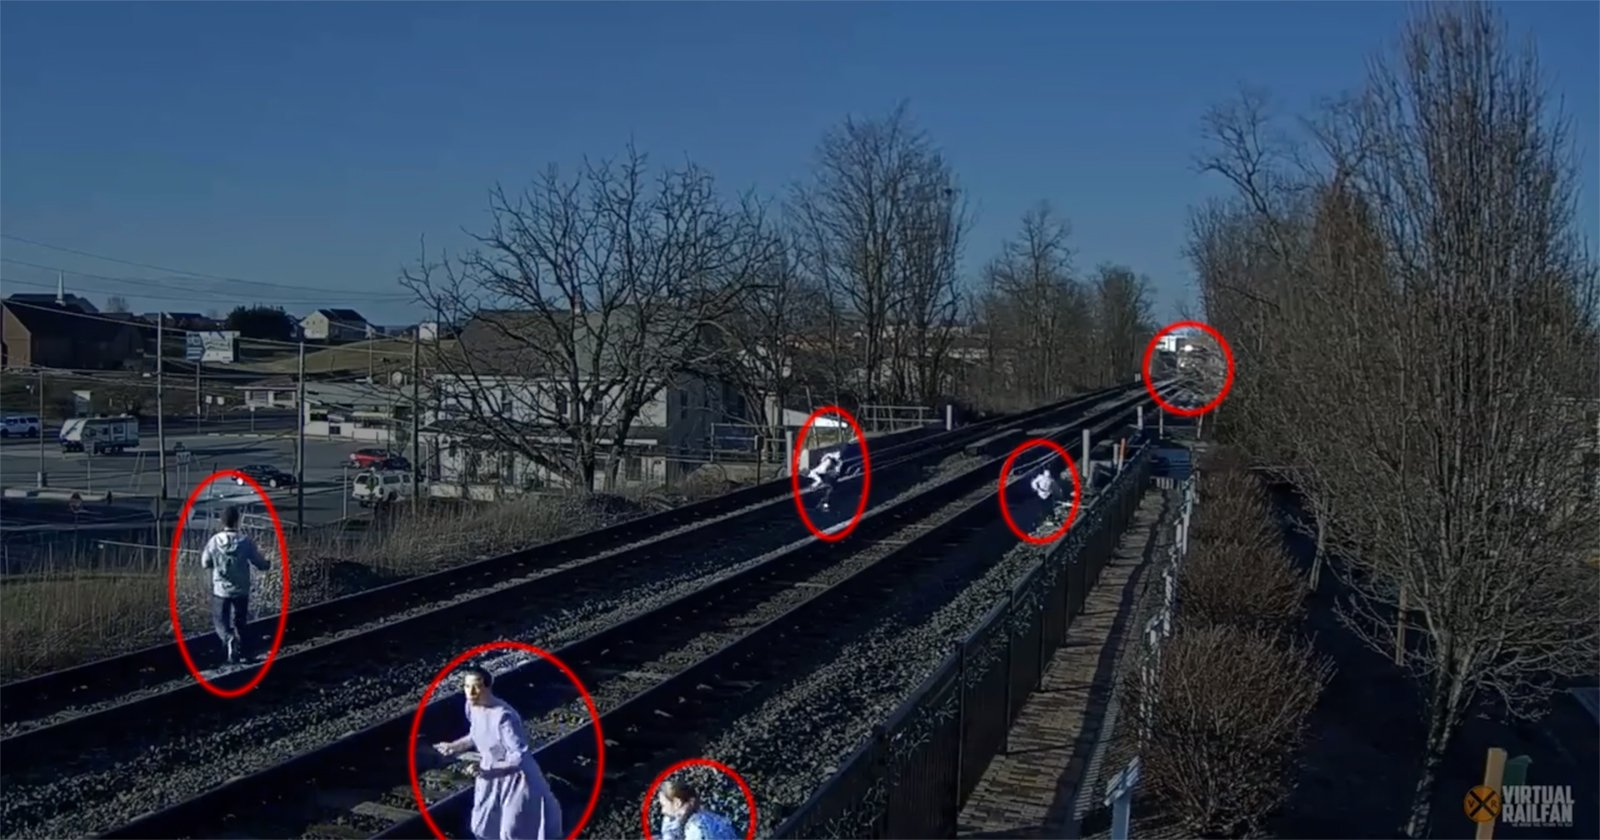 Video: Family Narrowly Avoids Getting Hit by Train During Photo Shoot